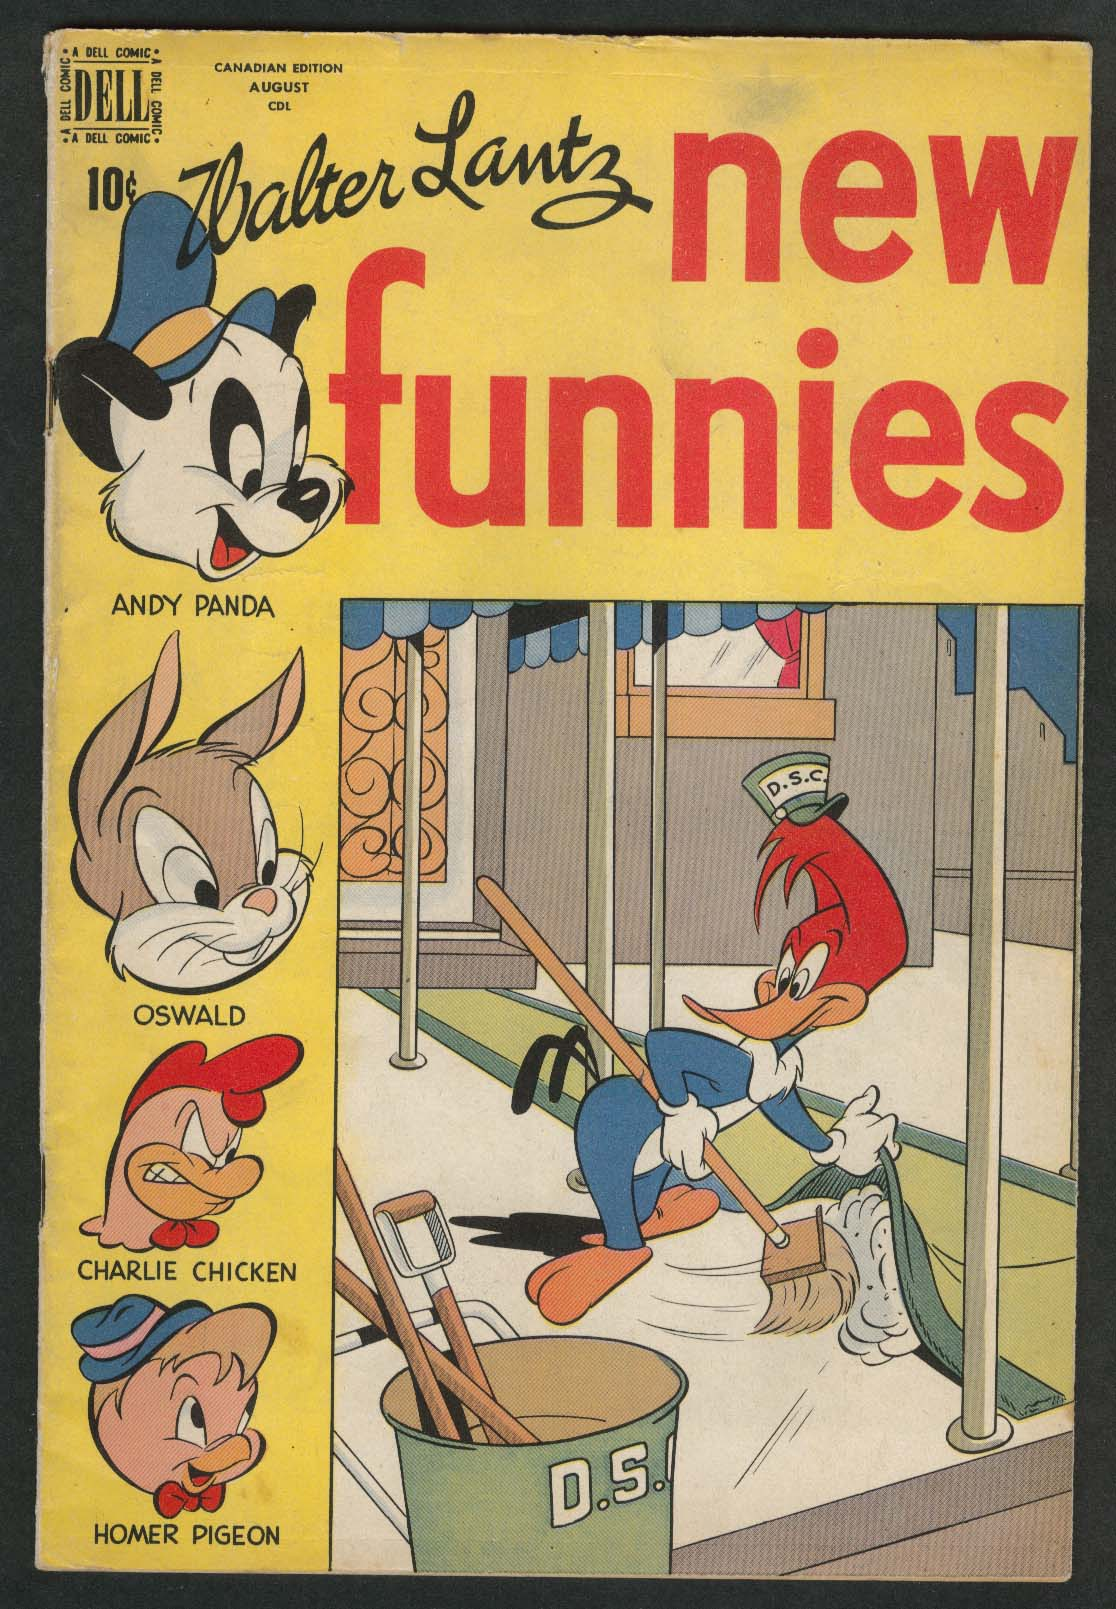 WALTER LANTZ New Funnies #148 Andy Panda Woody Woodpecker Dell comic book 8 1948